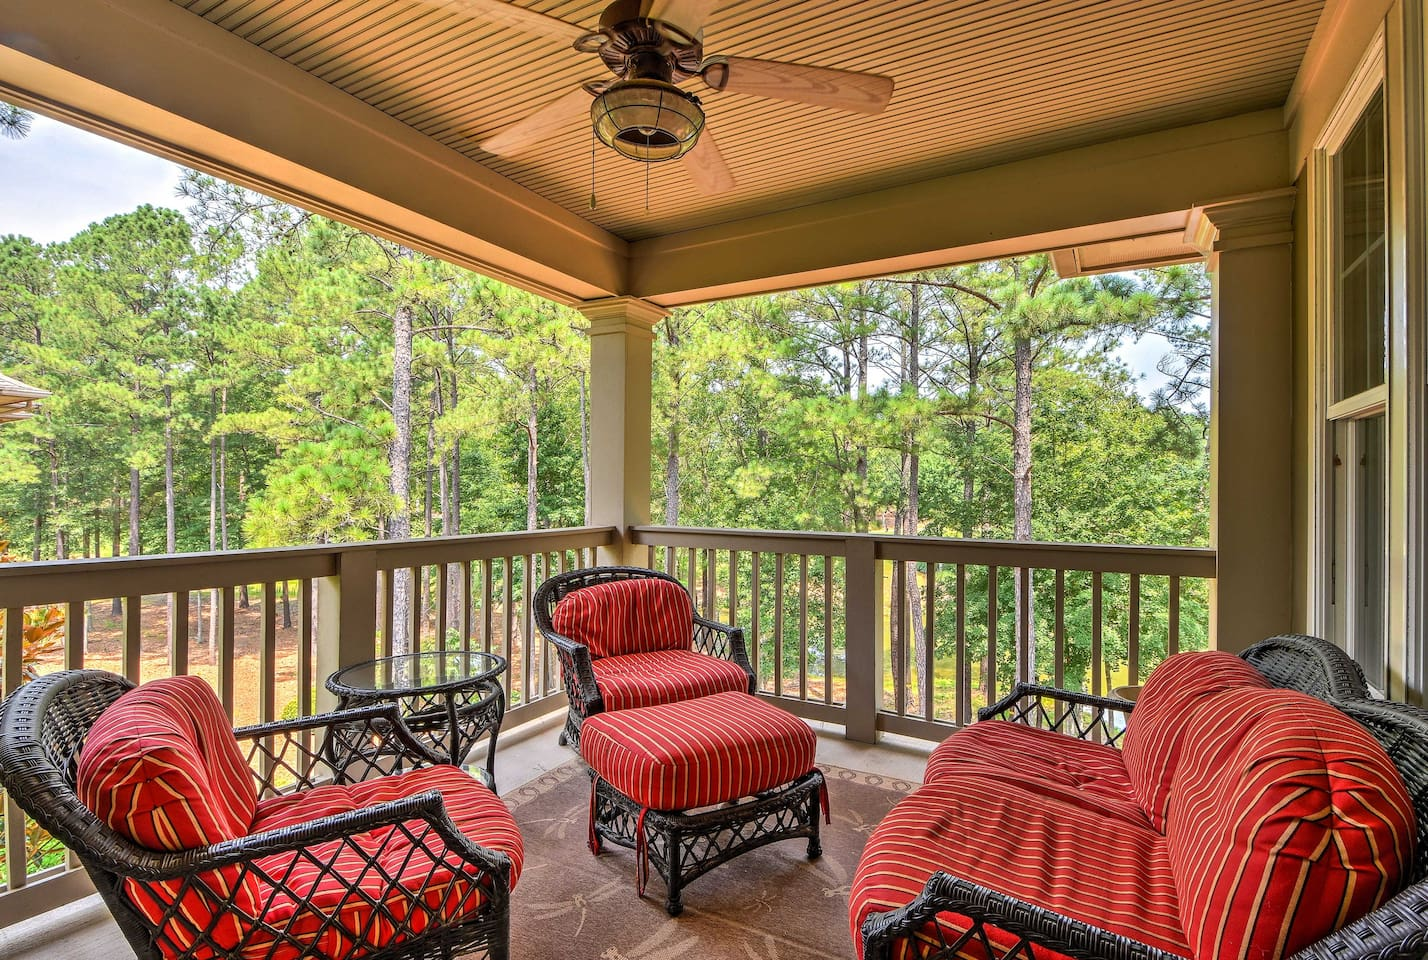 Soak up that sweet southern charm from this Greensboro vacation rental property!